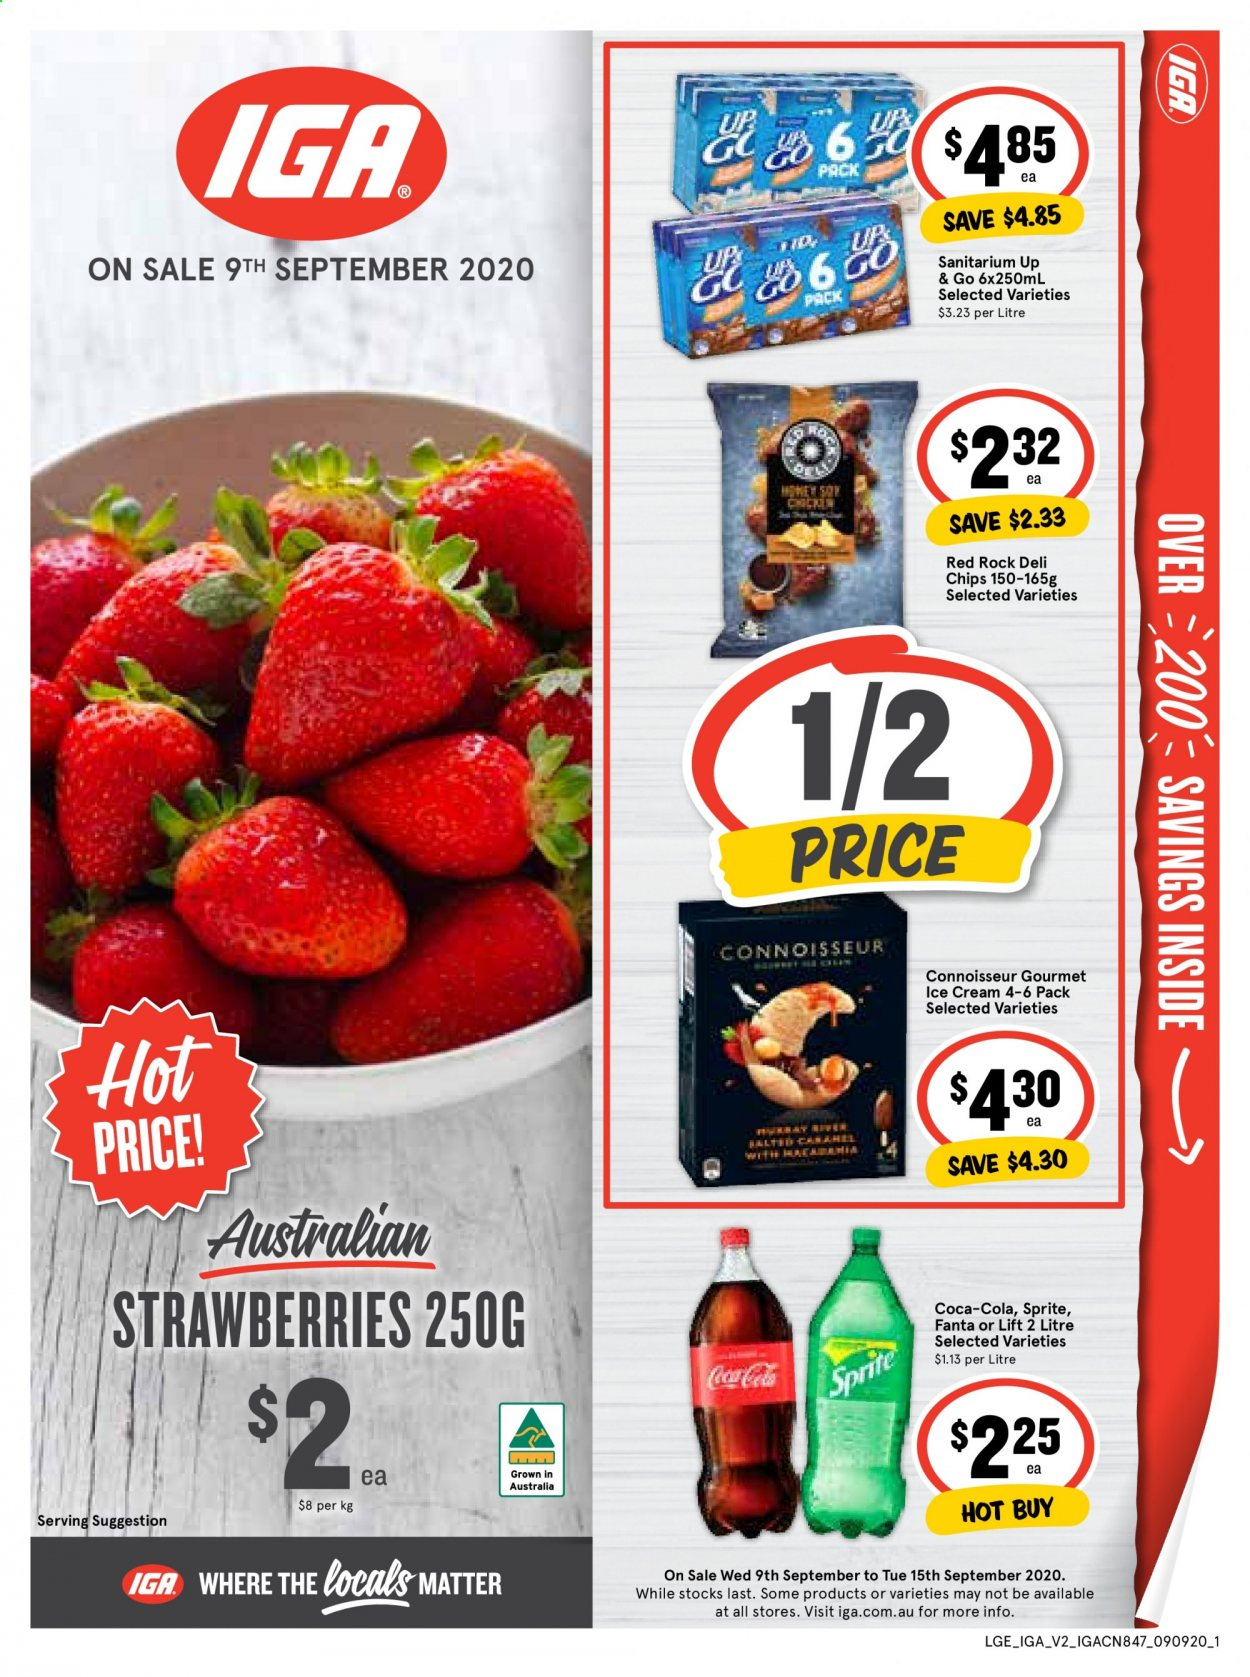 IGA Catalogue - 9.9.2020 - 15.9.2020 - Sales products - coca-cola, sprite, strawberries, ice cream, chips, fanta. Page 1.